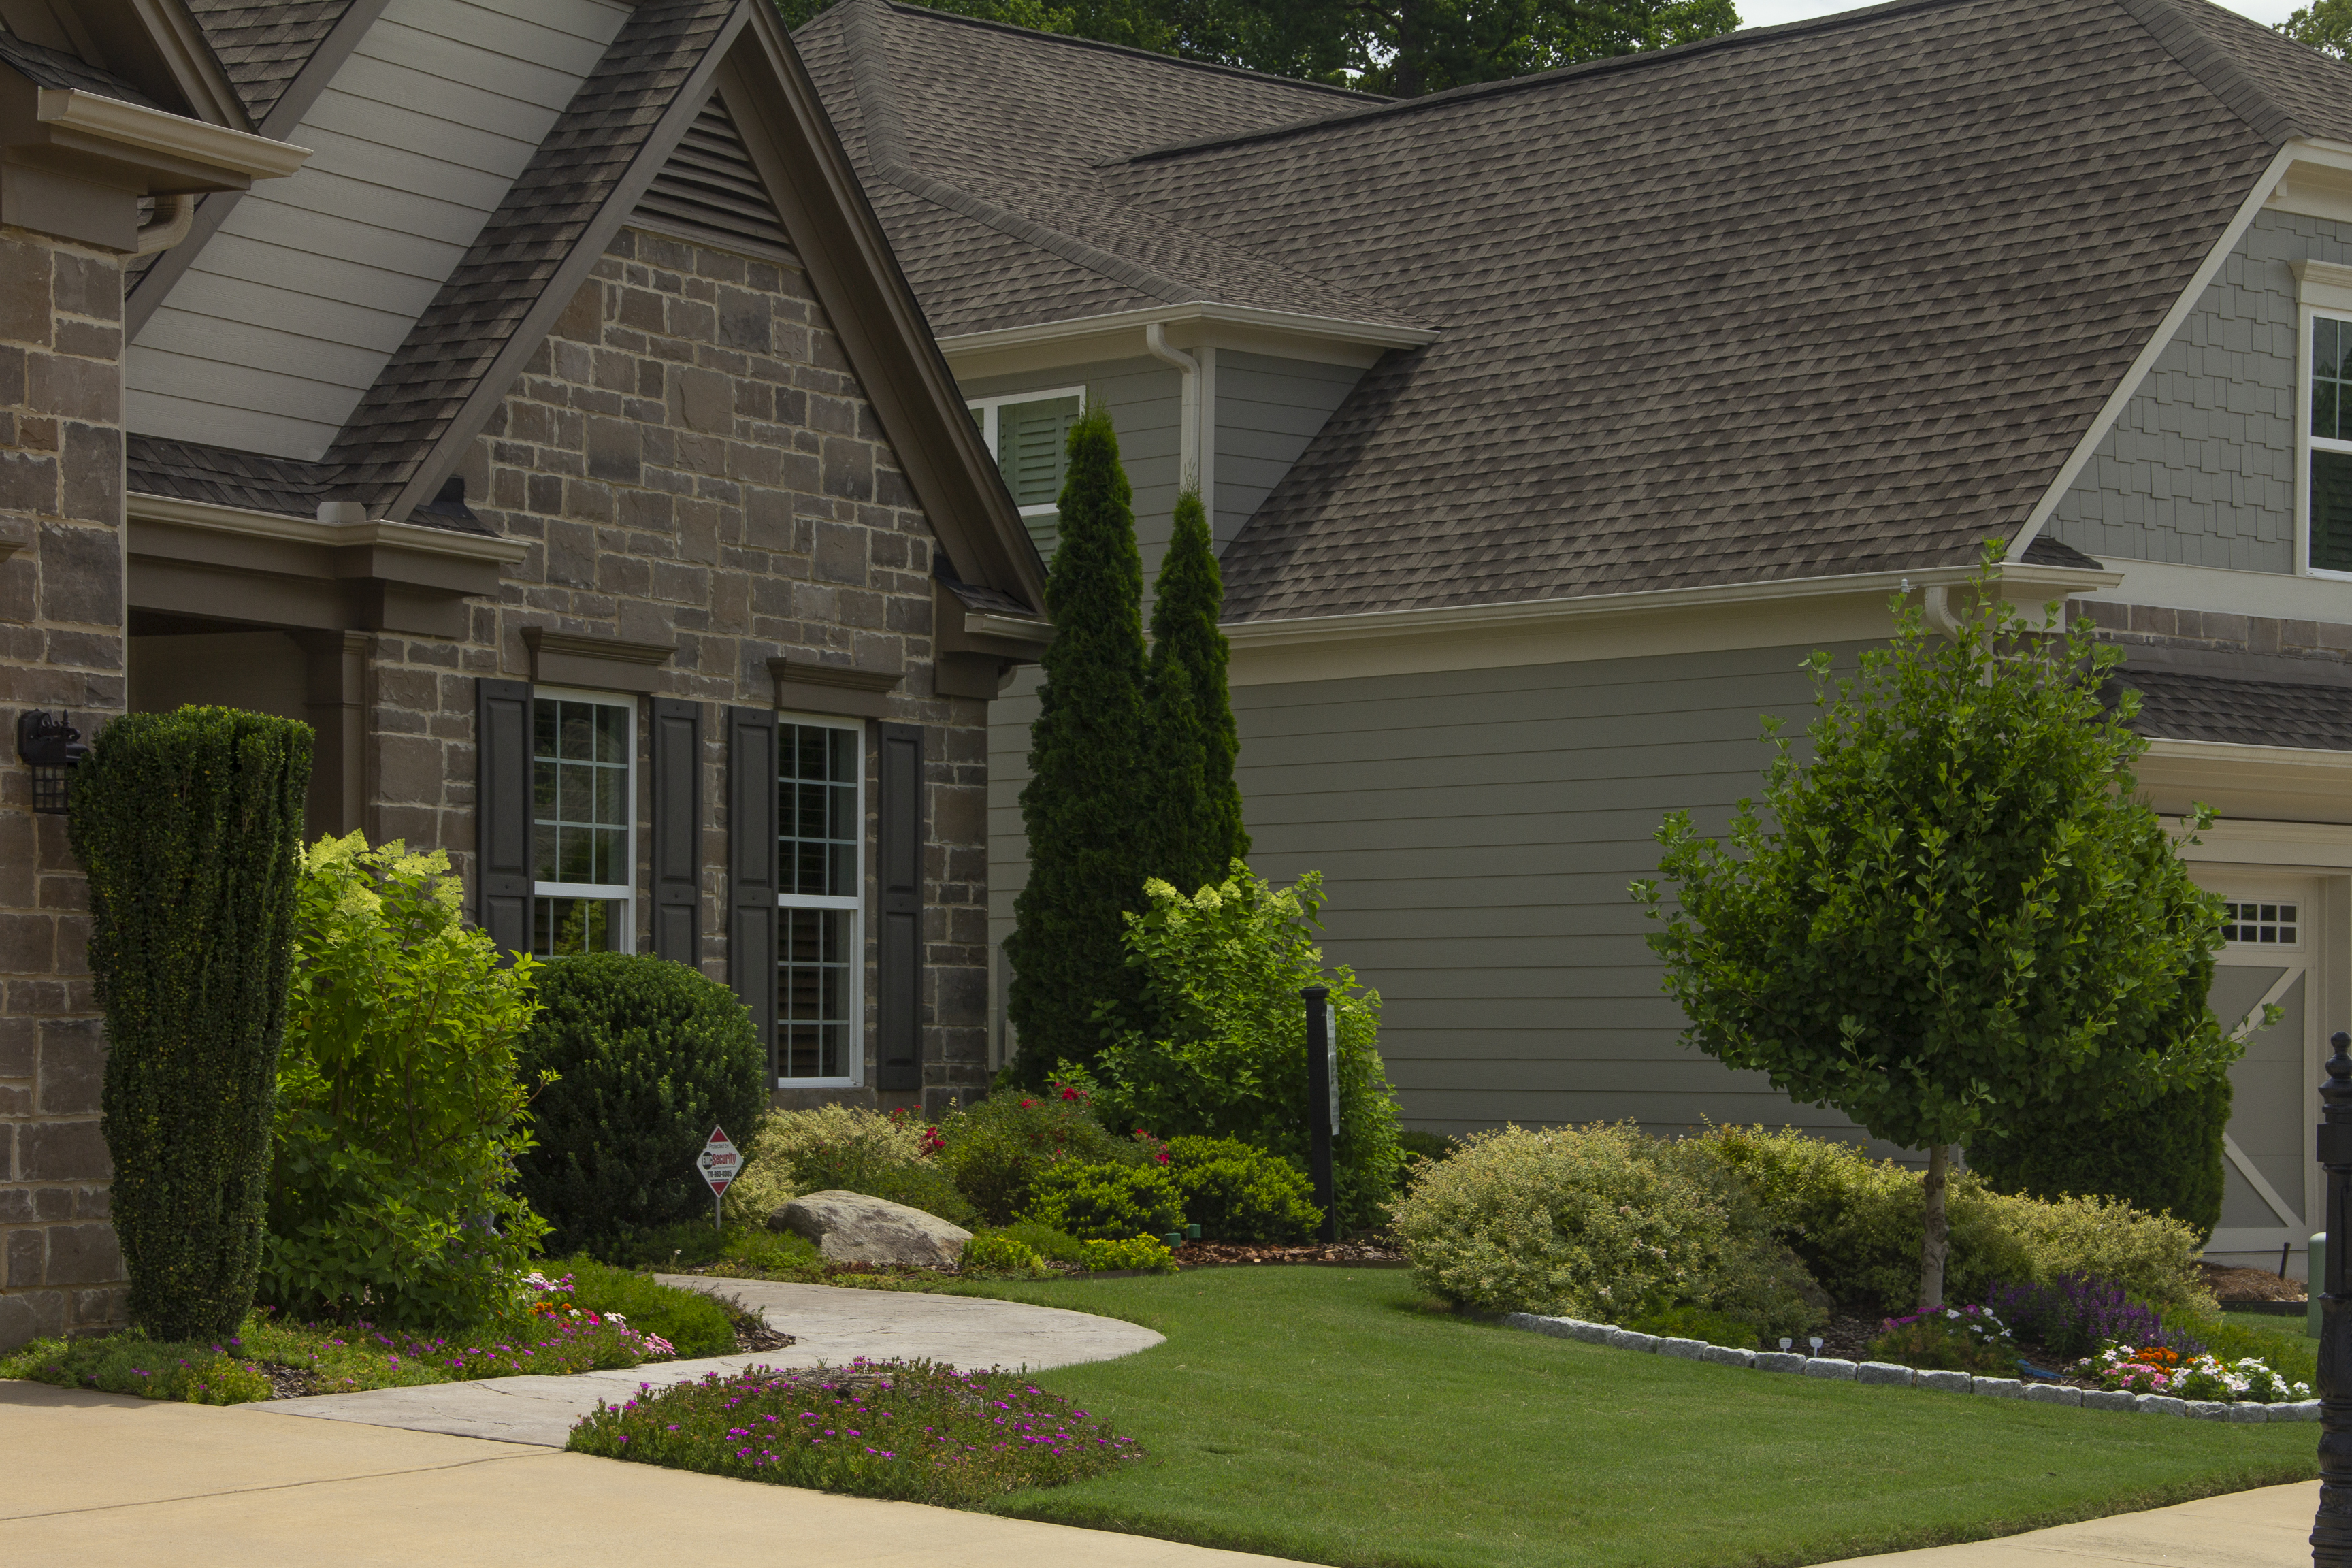 Top Commercial landscaping Companies near me - Modern Landscaping Ideas IMG 0068